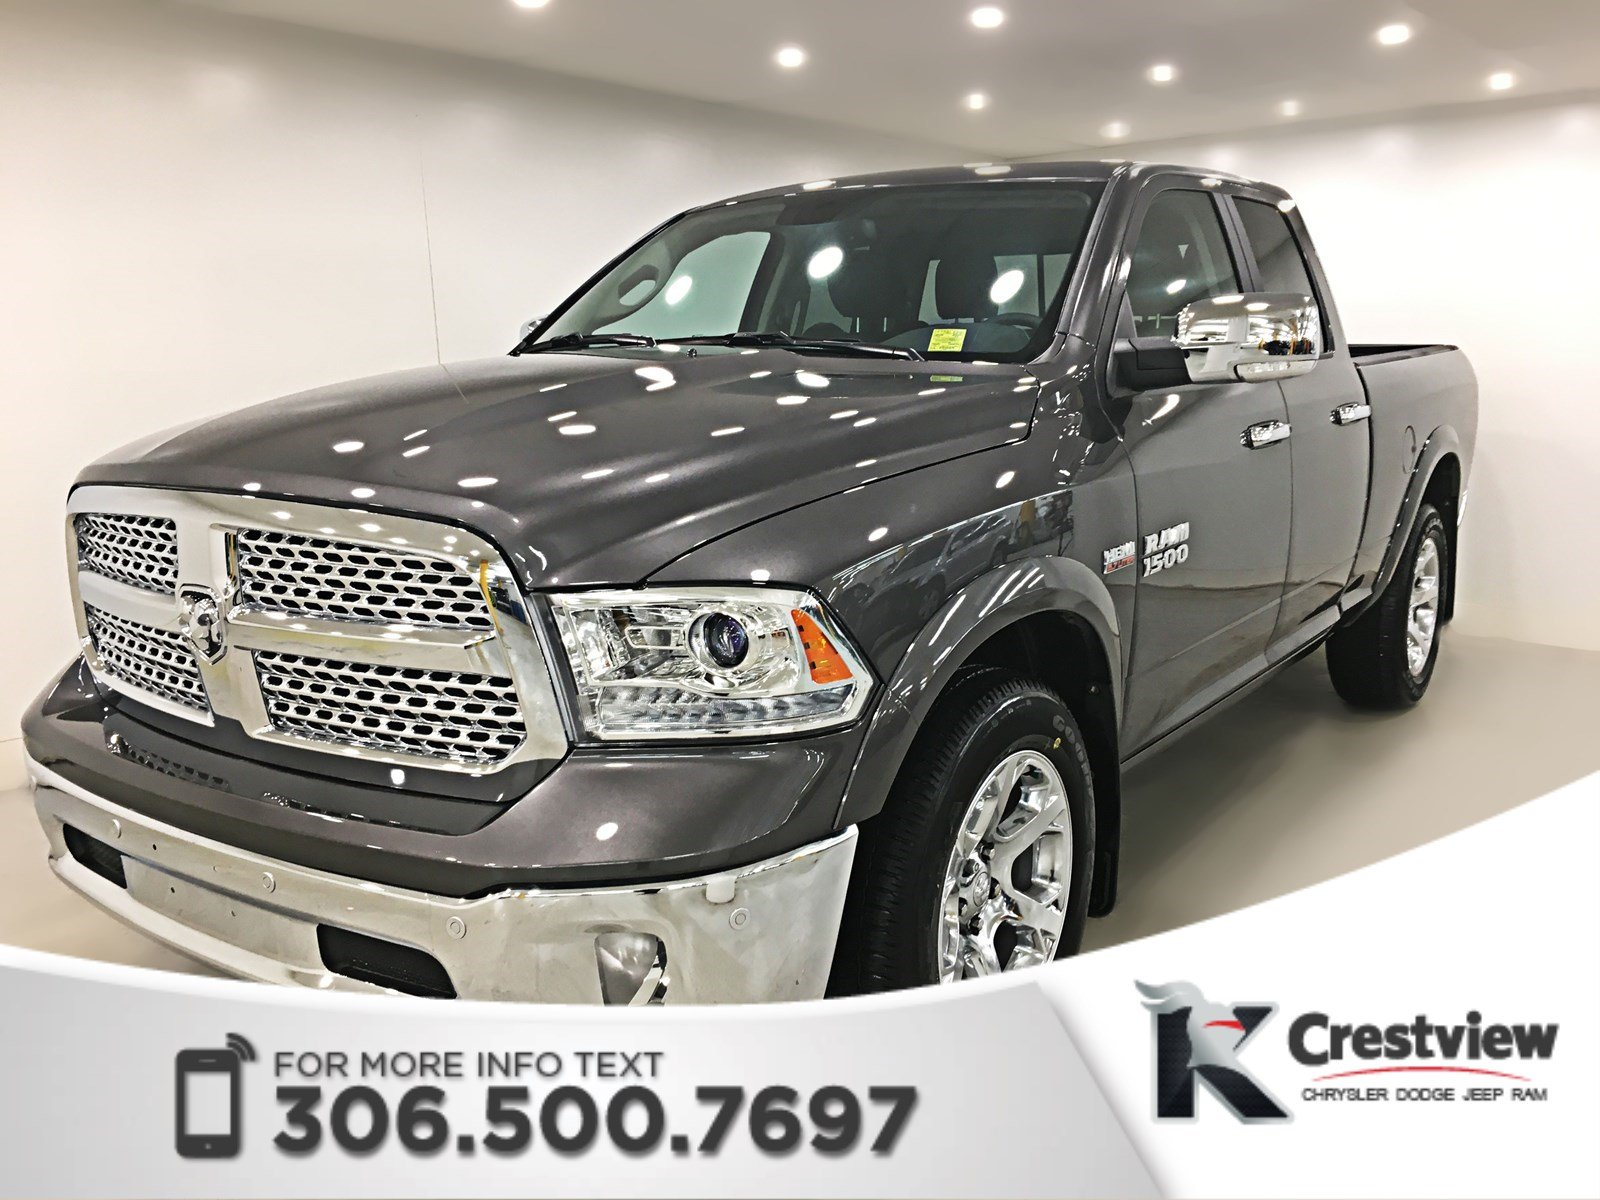 Certified Pre-Owned 2017 Ram 1500 Laramie Quad Cab | Ventilated Seats | Sunroof | Remote Start